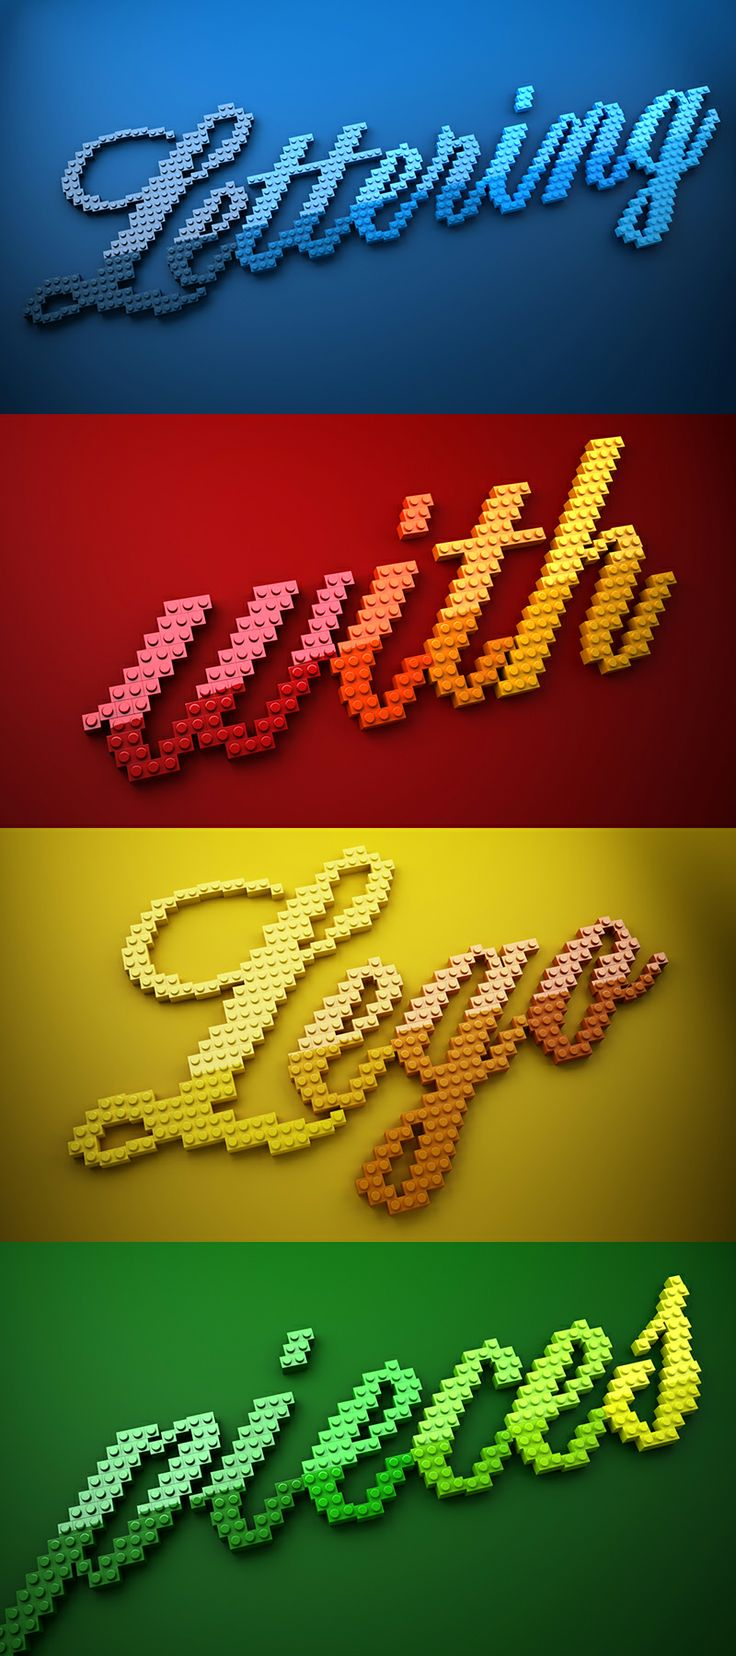 Lettering with Lego pieces by Muokkaa